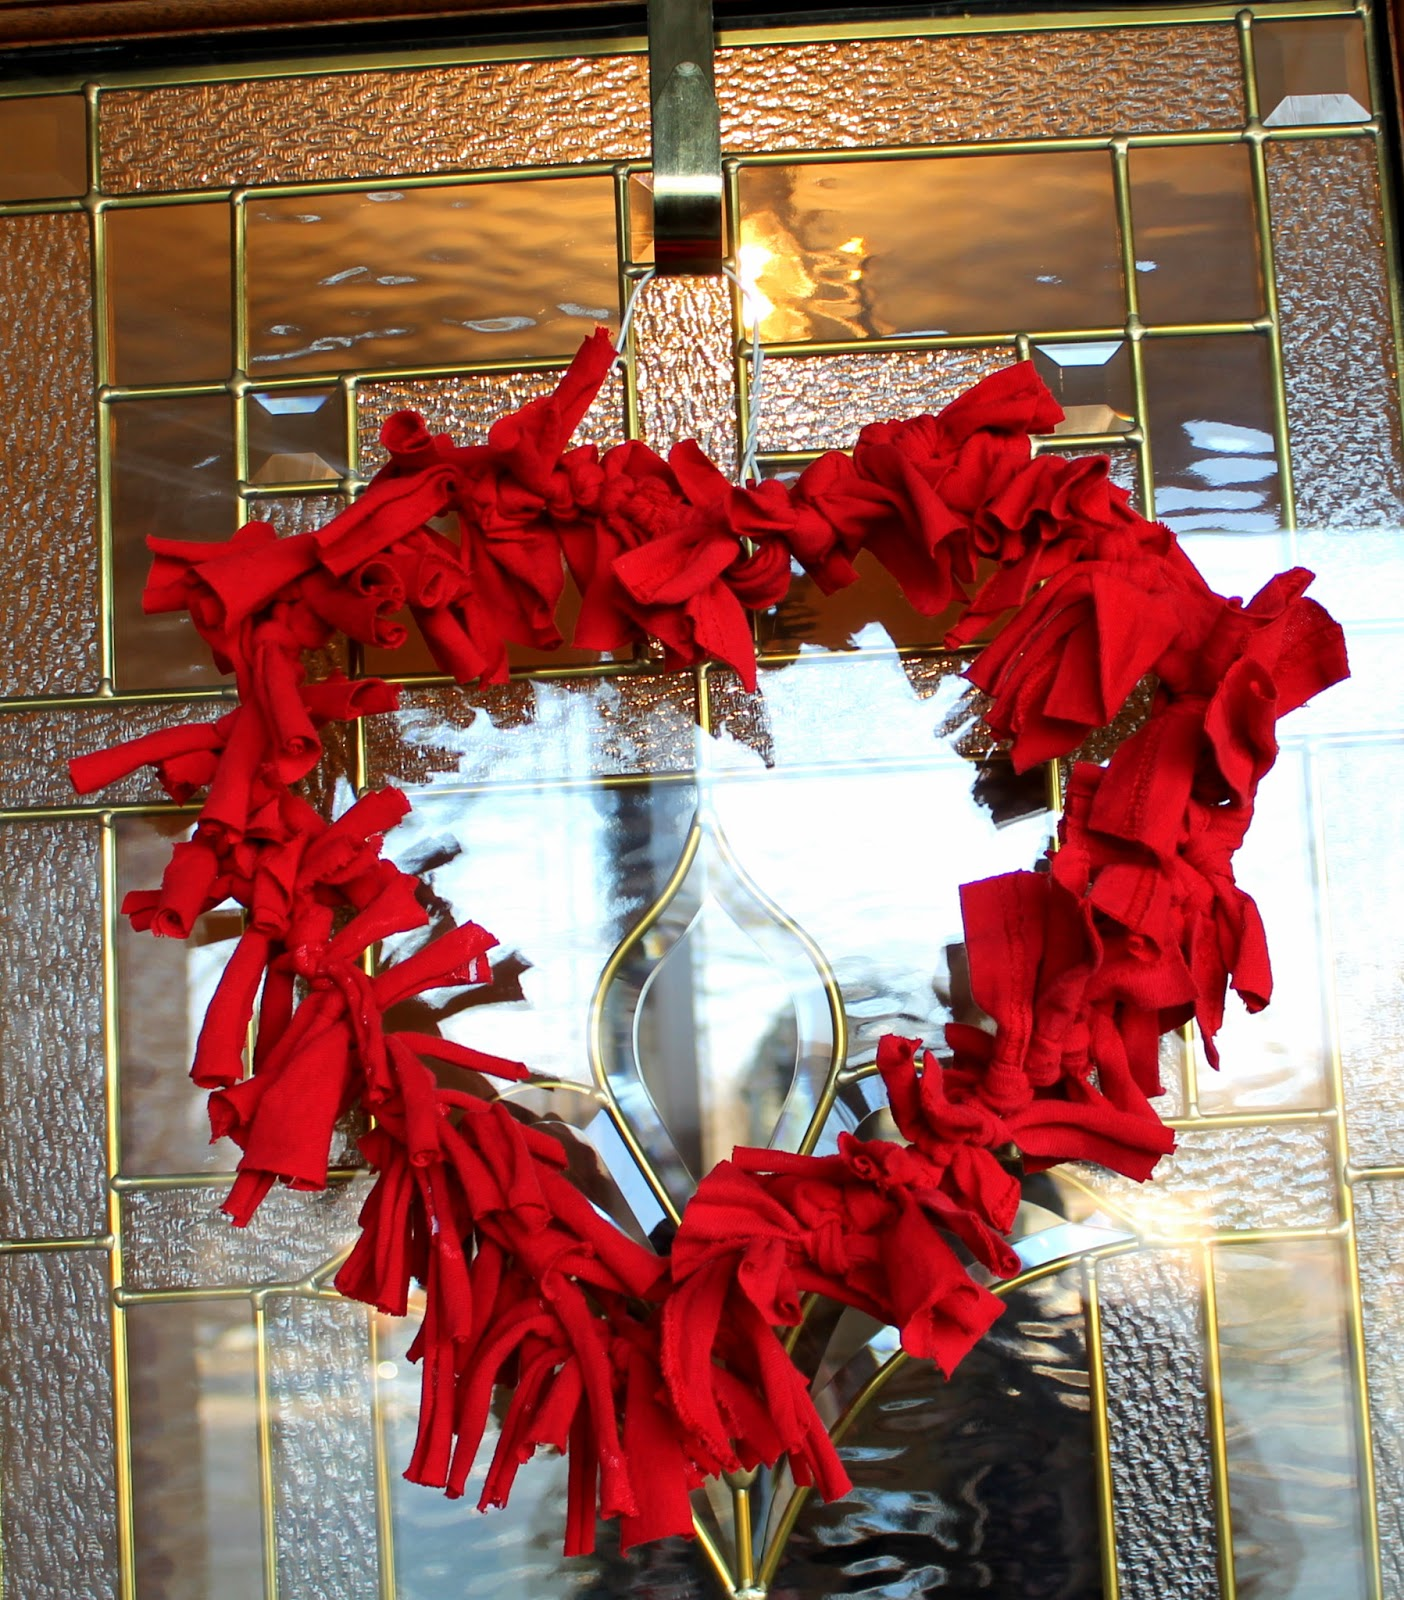 DIY: Heart Shaped Wreaths From Fabric Scraps Or Old Tees